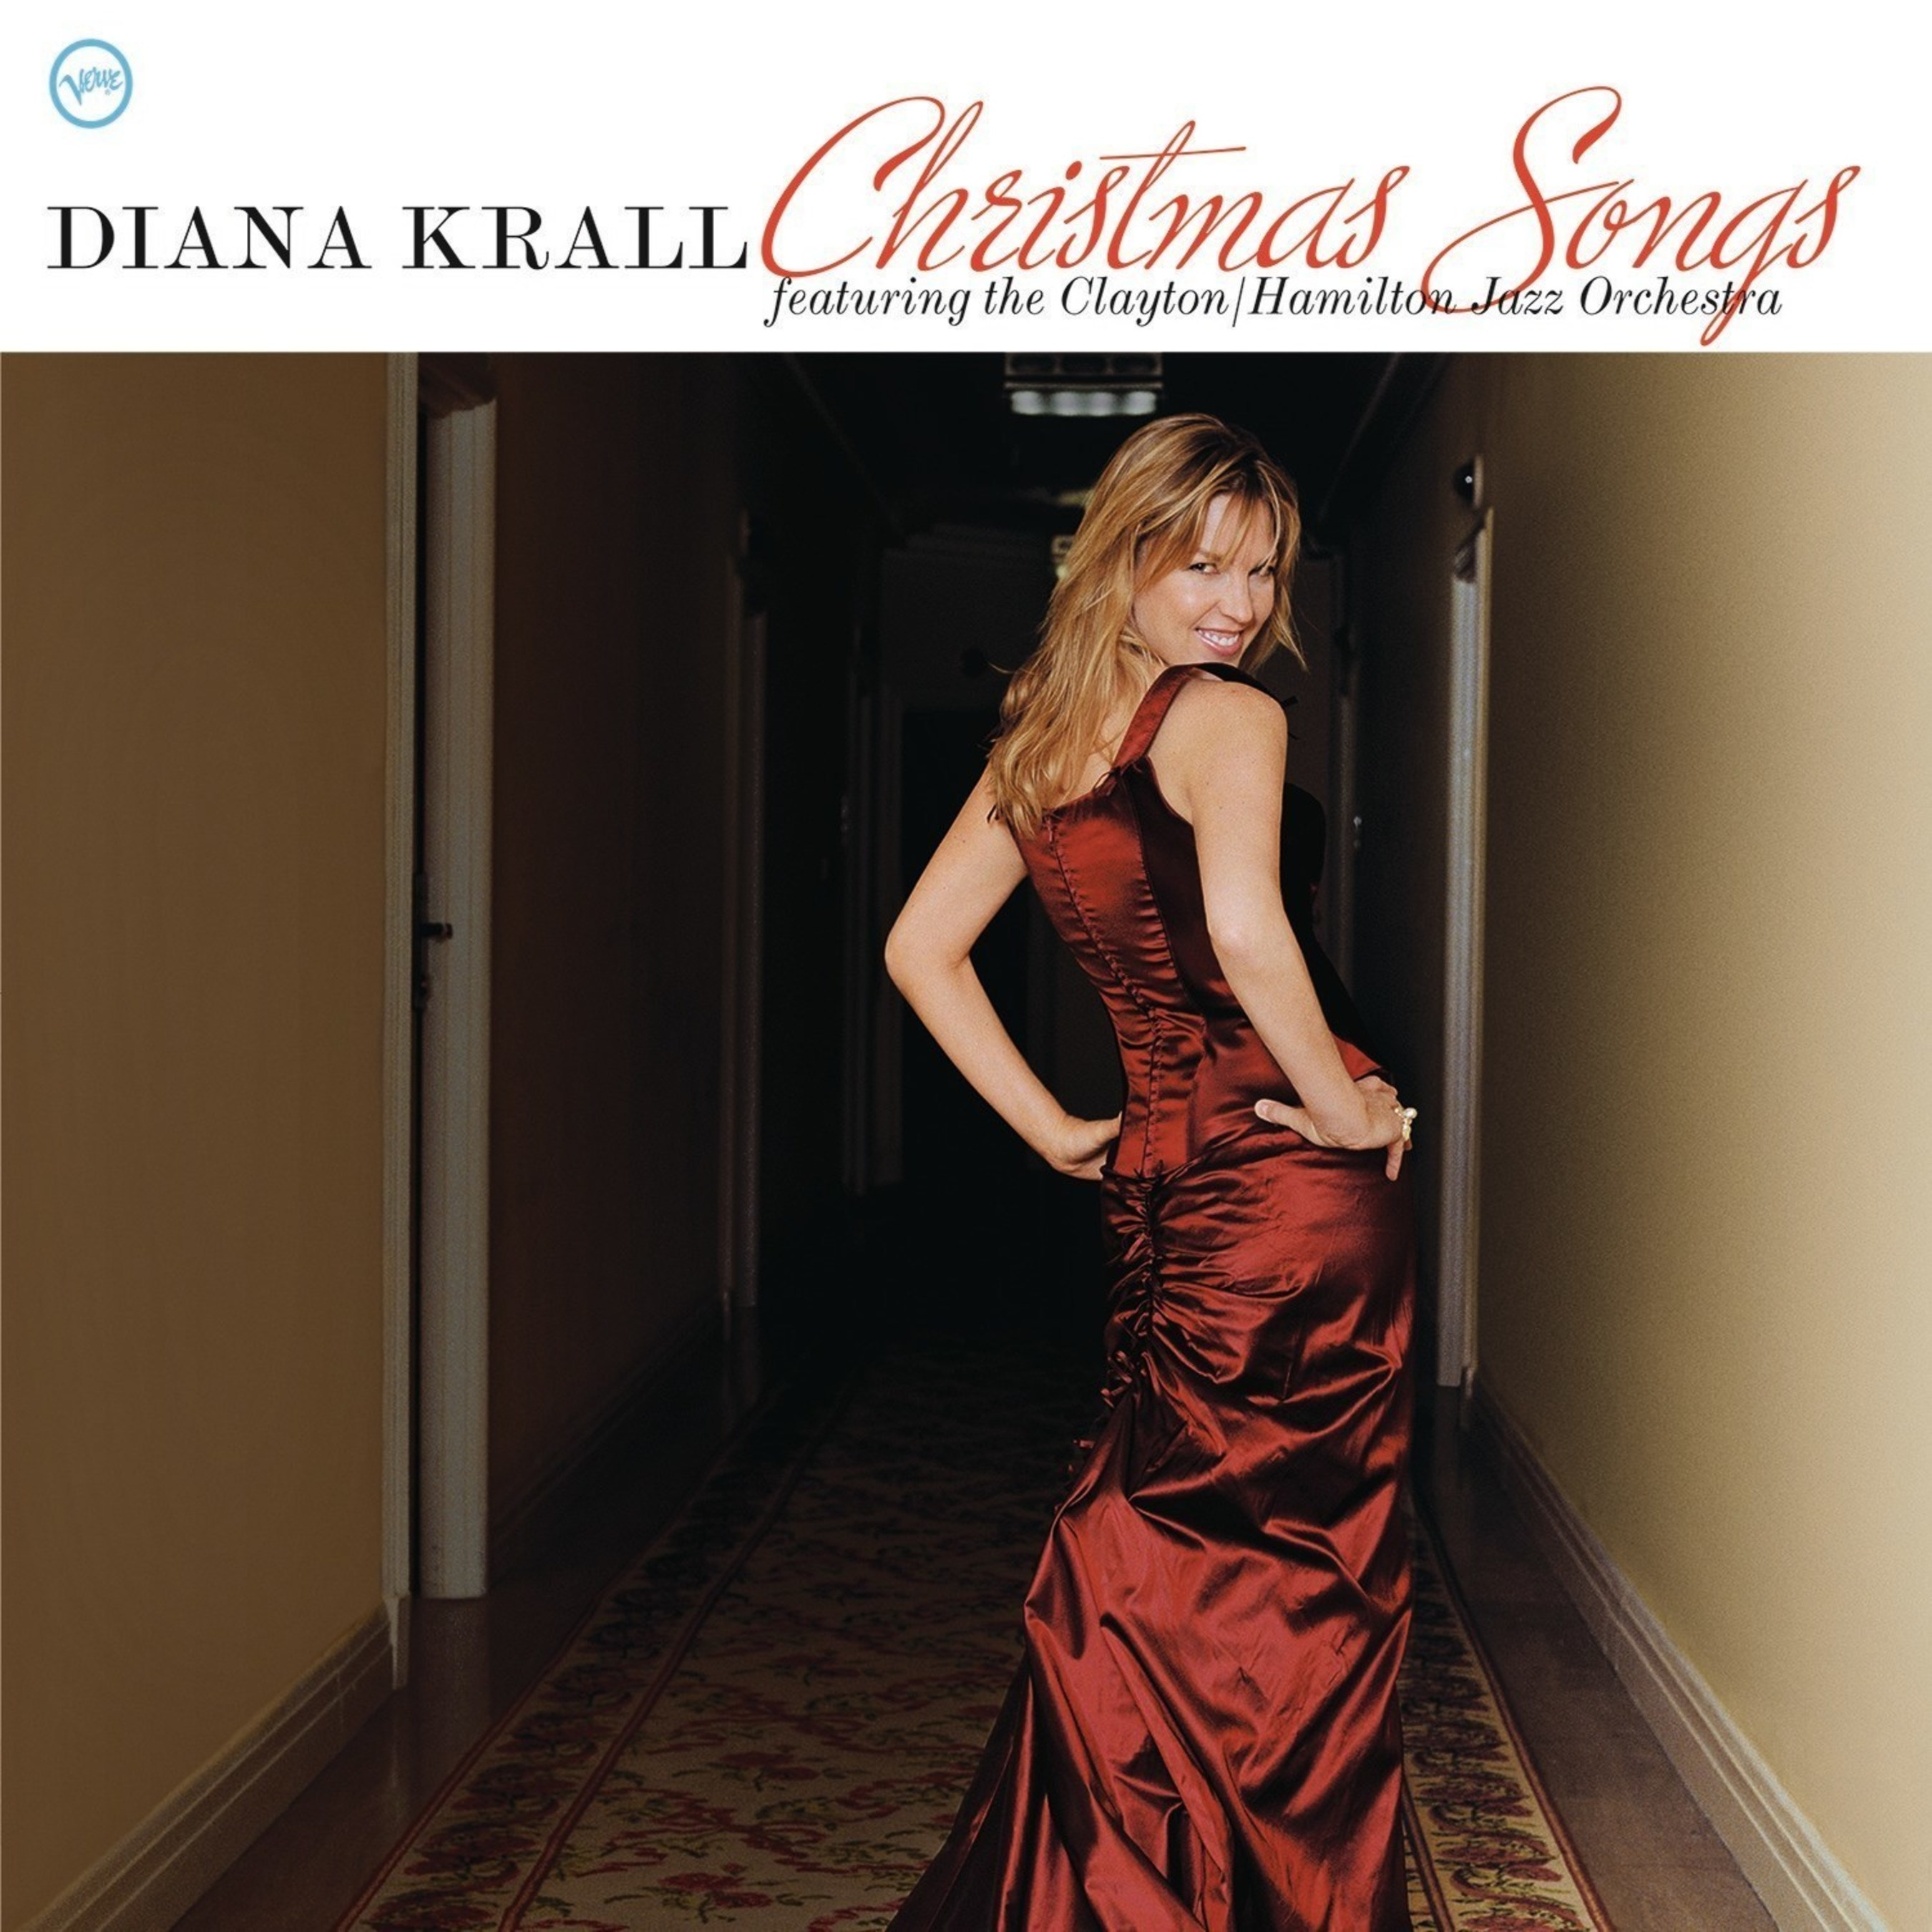 Diana Krall's Classic Holiday Album 'Christmas Songs,' Featuring The Clayton/Hamilton Jazz Orchestra, Released Back On Vinyl Today via Verve Records/UMe